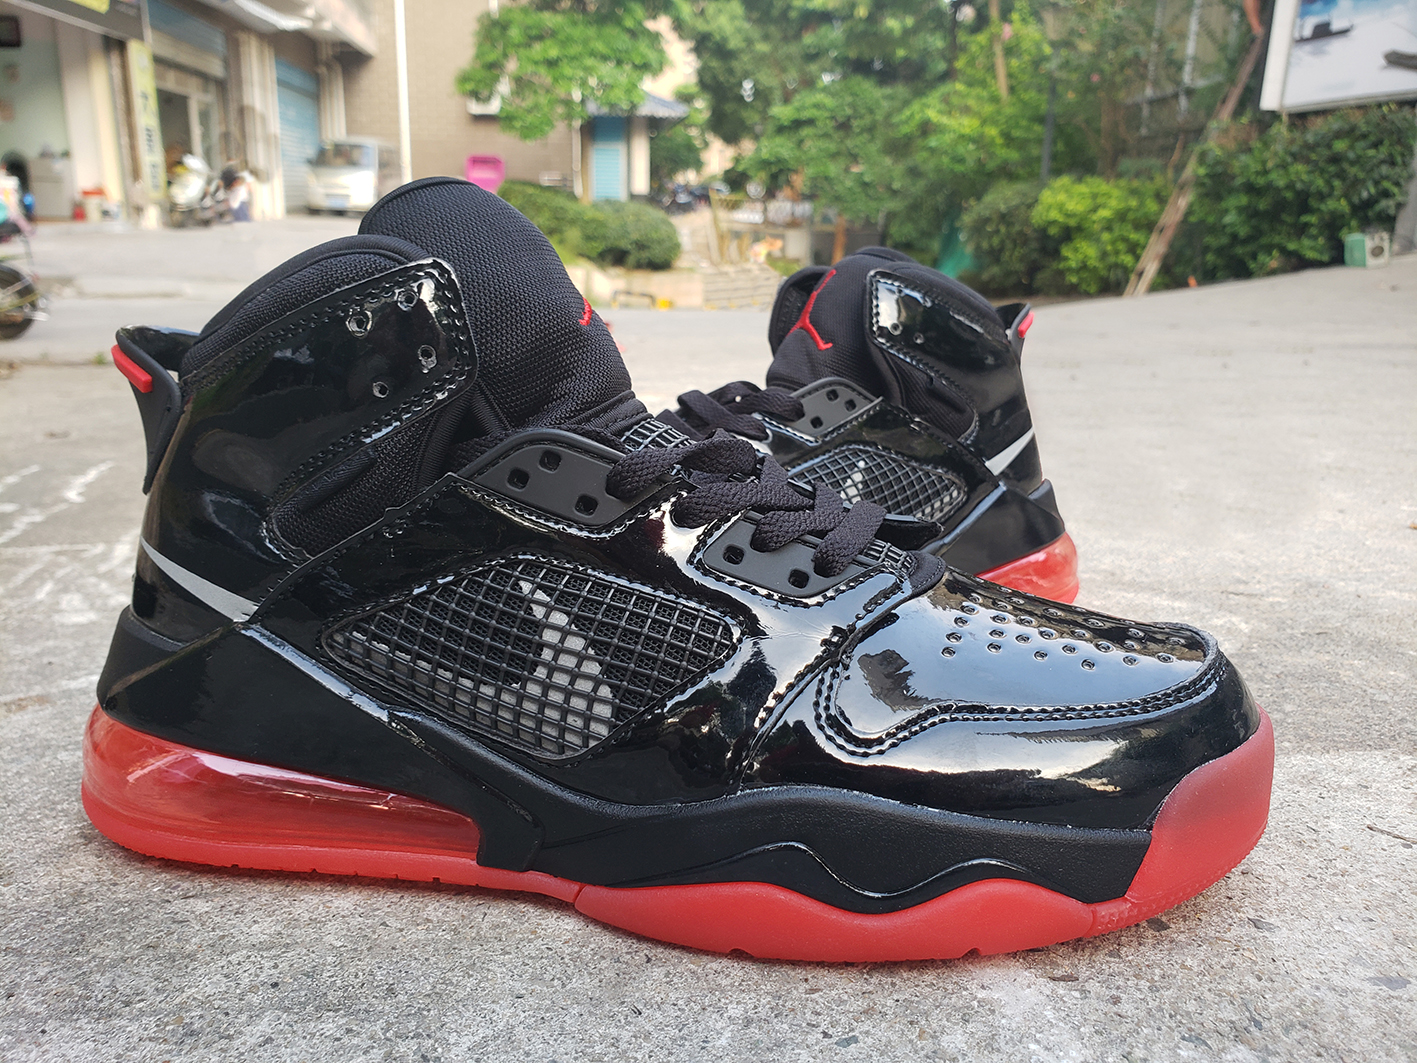 Jordan Joint Name Black Red Shoes